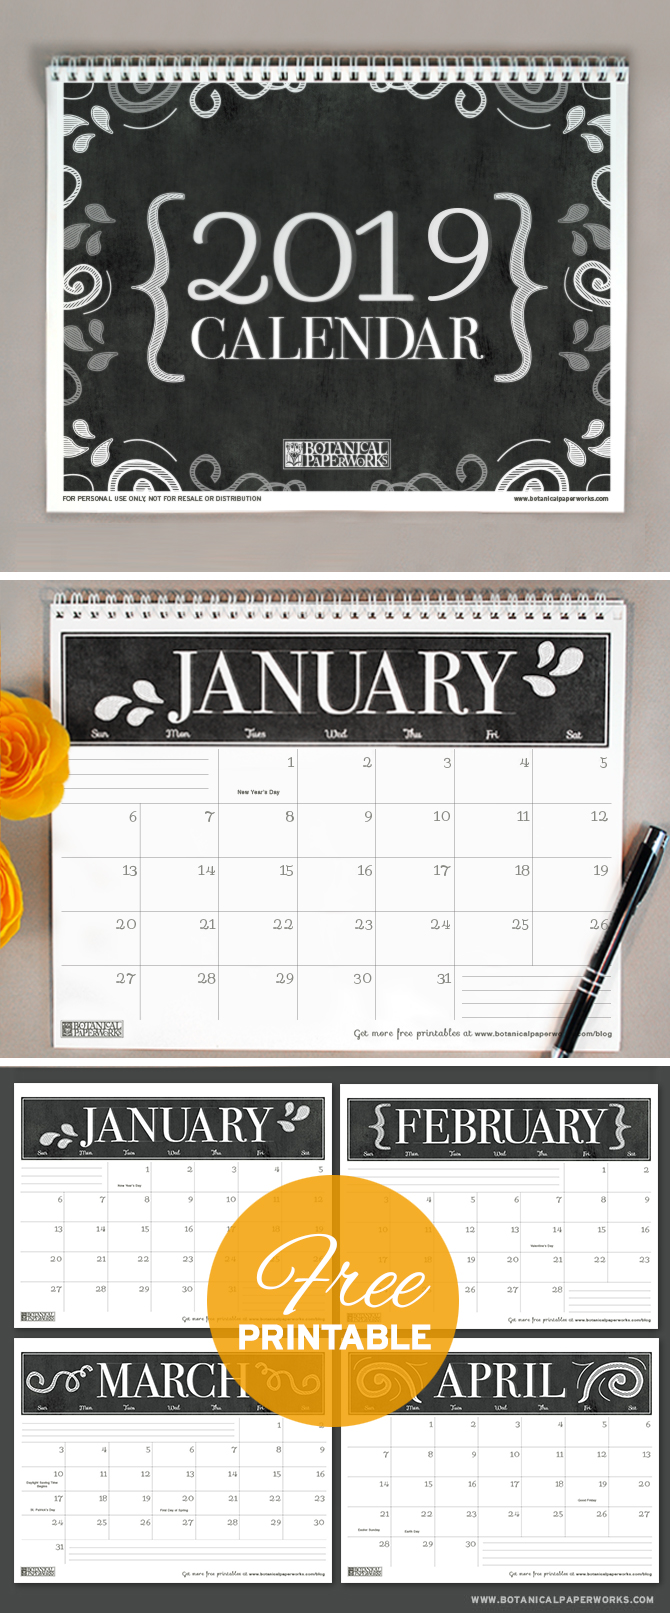 With a sophisticated black and white chalkboard design, this 2019 free printable calendar is perfect for home or office use. See more designs and download your favorite 2019 calendar on our blog!